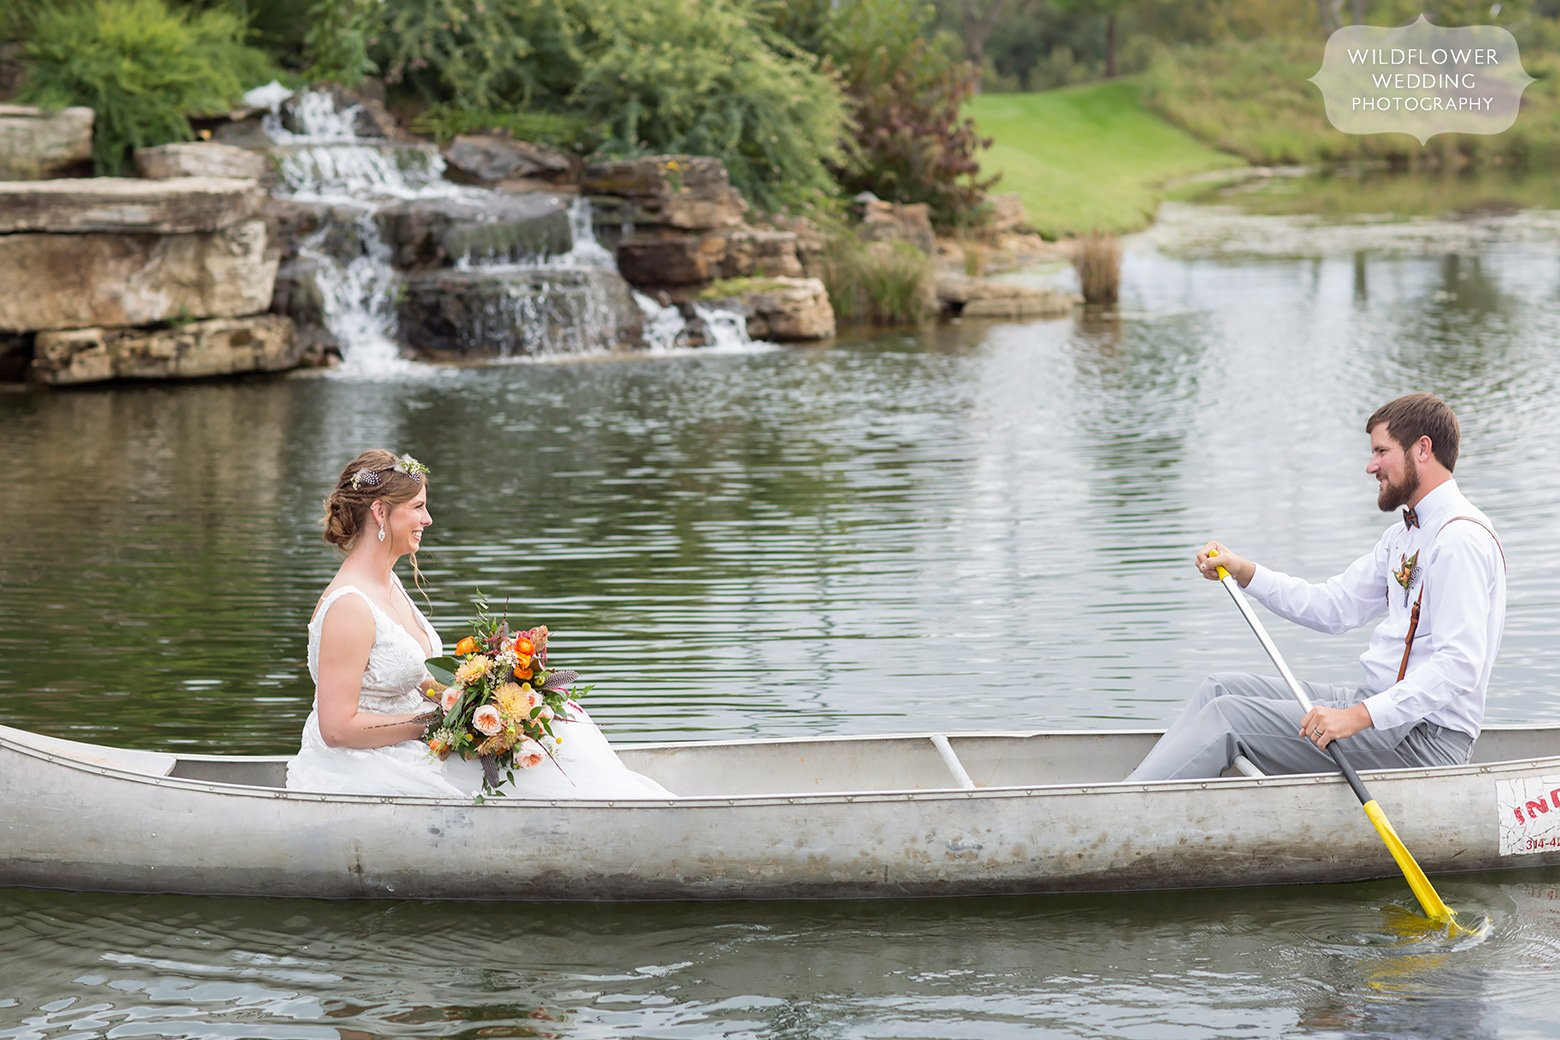 The bride and groom canoeing around a lake near Hermann, MO.